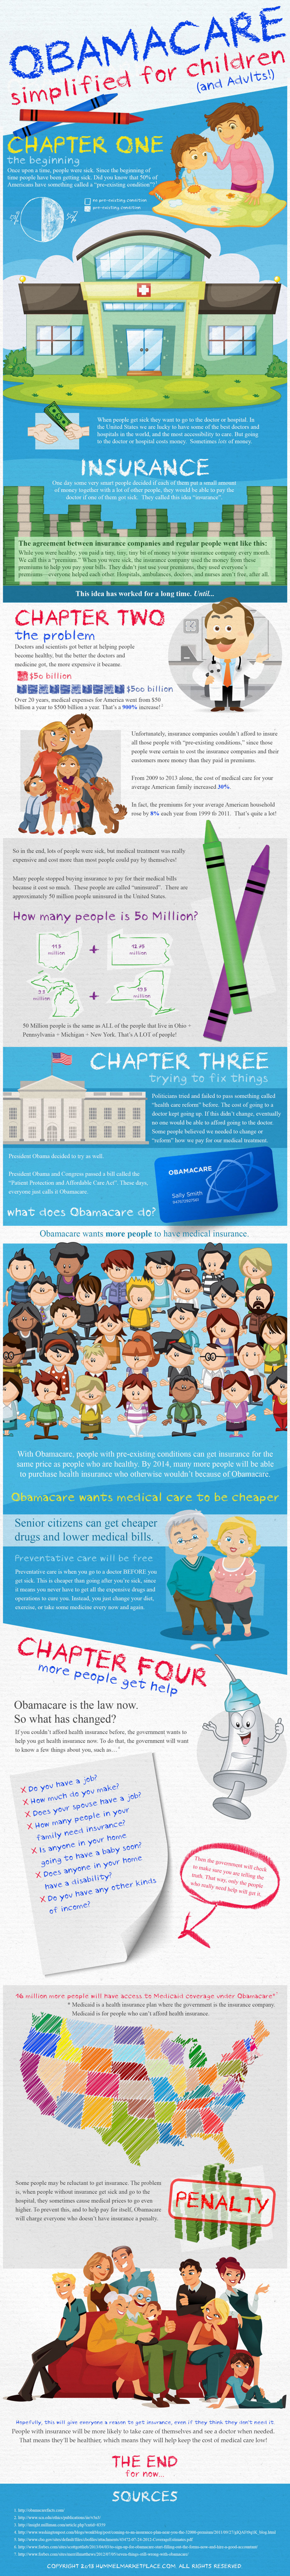 Obamacare Simplified for Children (and Adults) Infographic